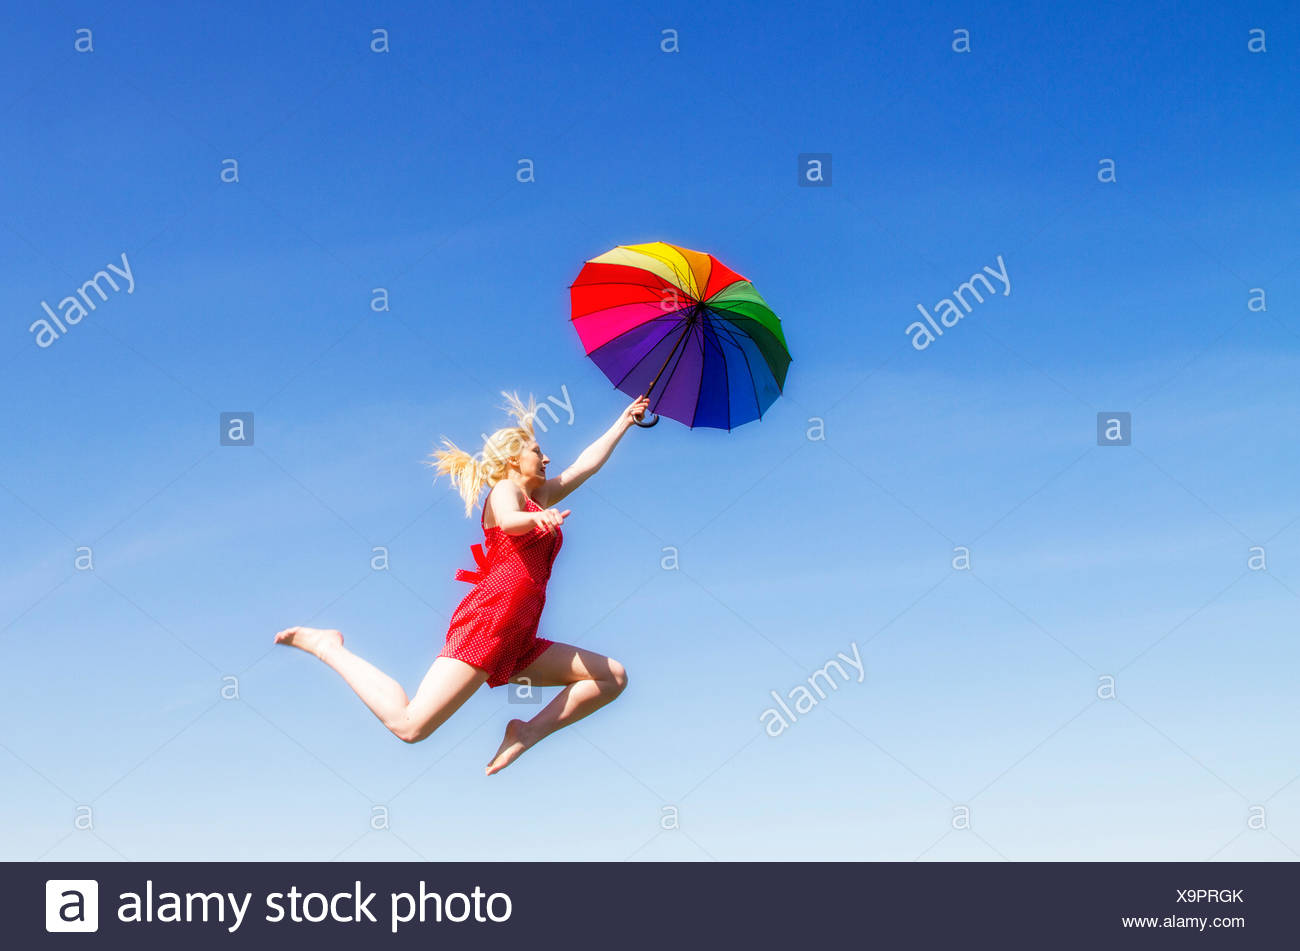 Young woman jumping with colorful umbrella - Stock Image